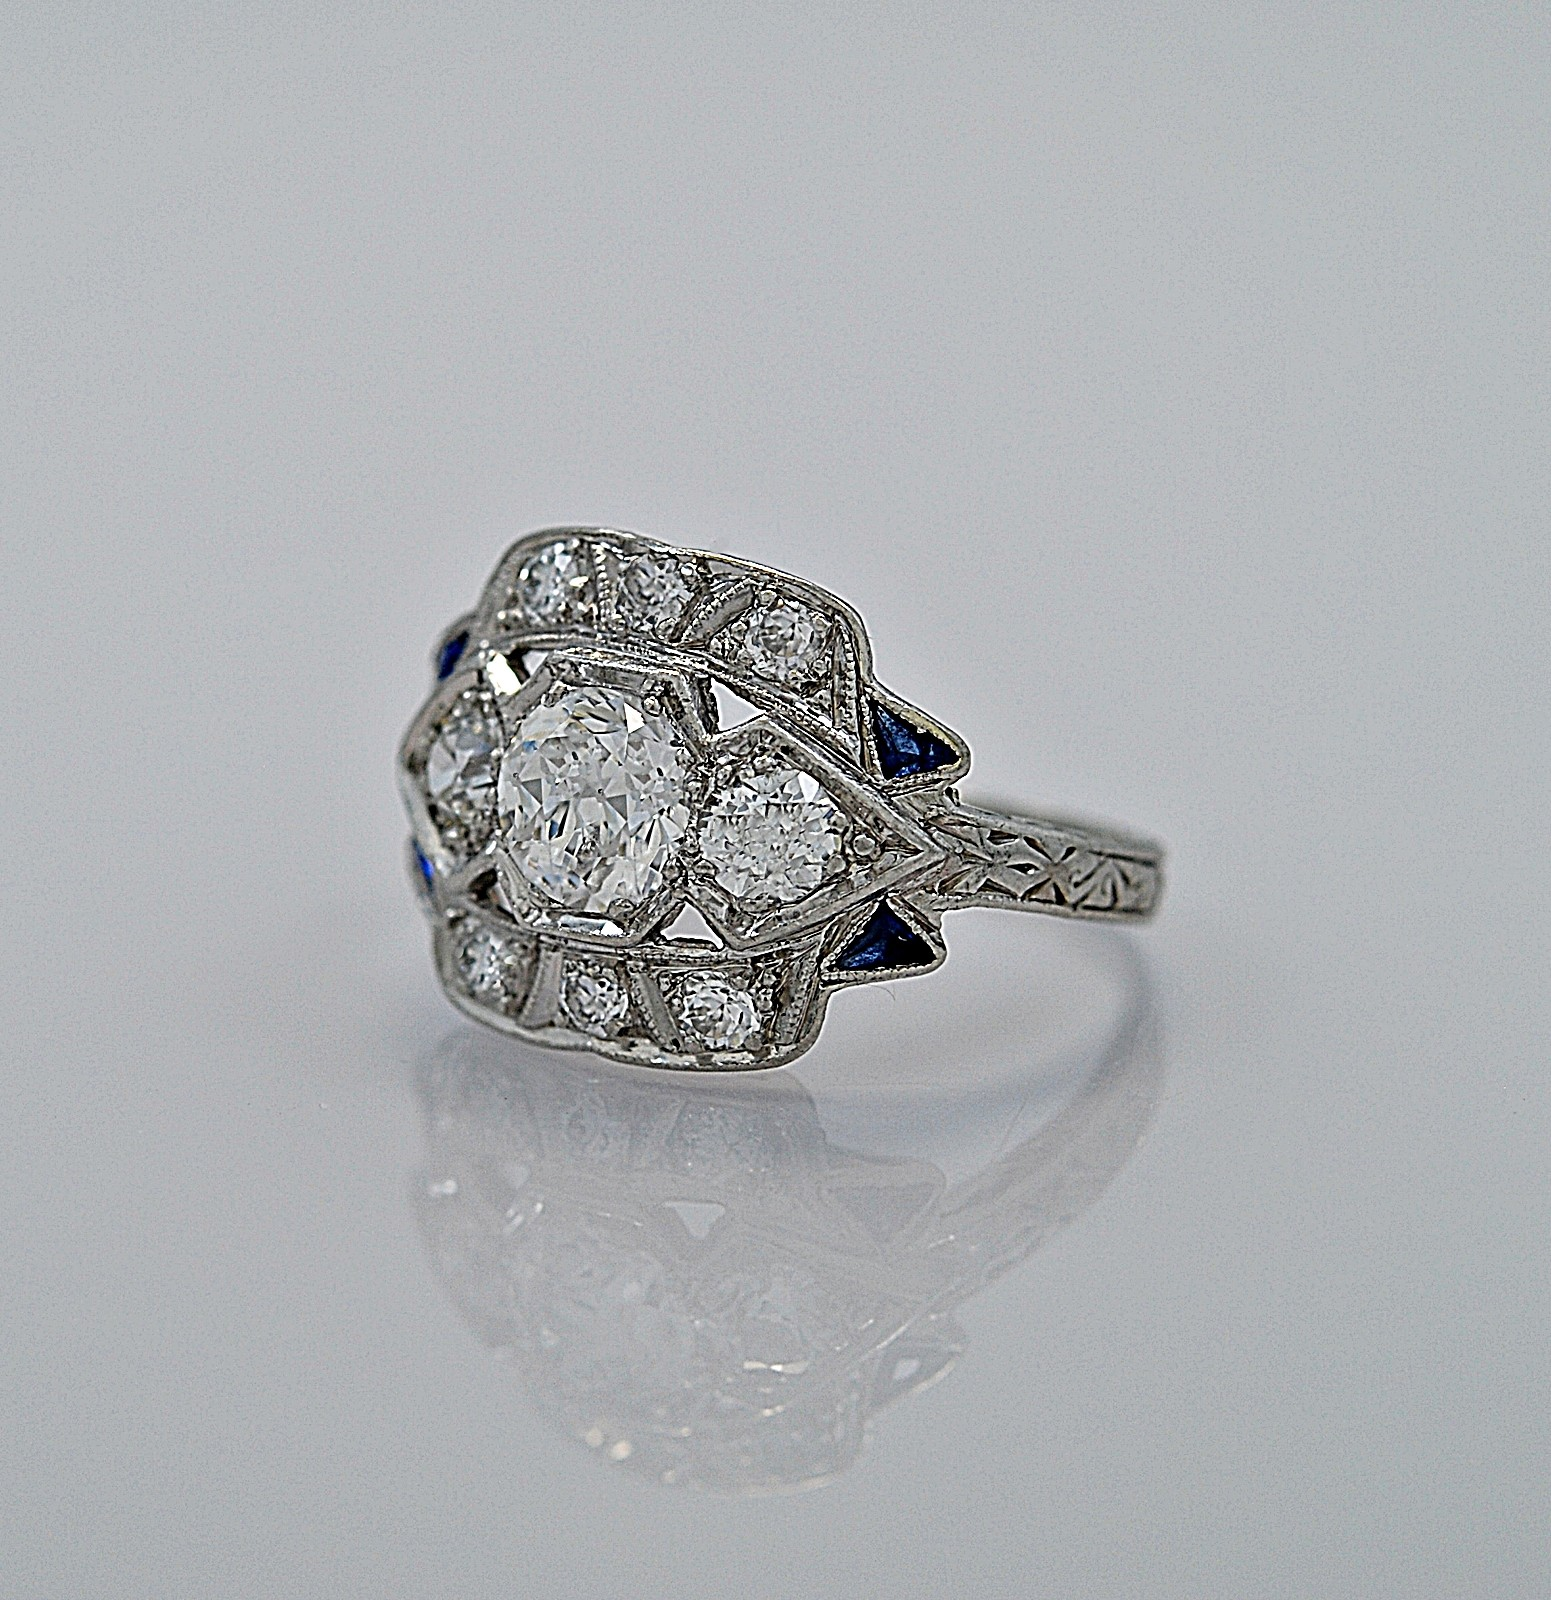 55ct-diamond-sapphire-platinum-art-deco-engagement-ring